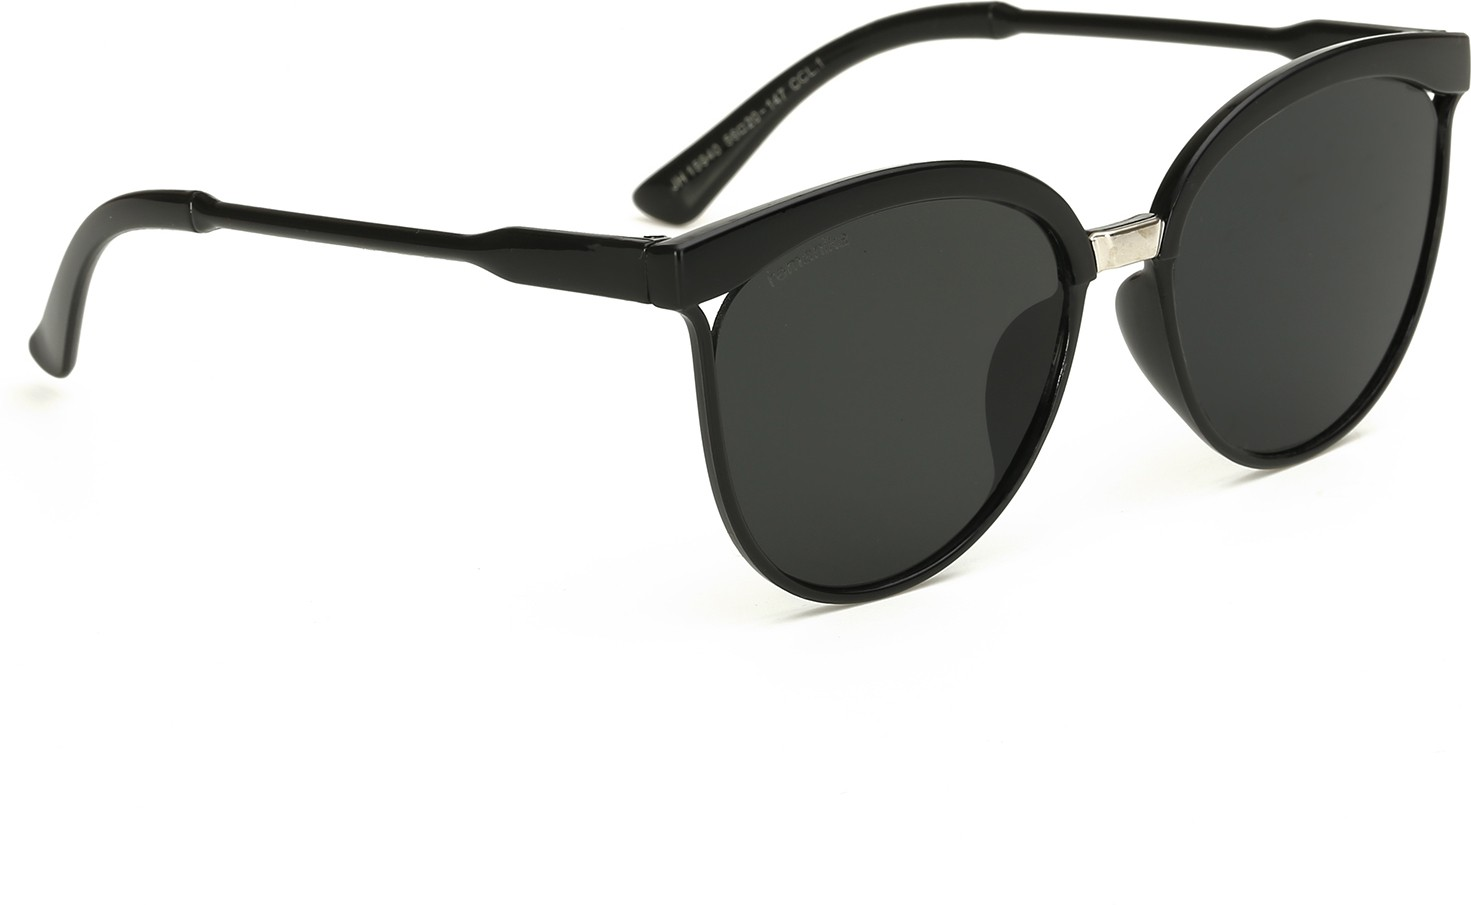 Deals - Delhi - Remanika <br> Sunglasses<br> Category - sunglasses<br> Business - Flipkart.com